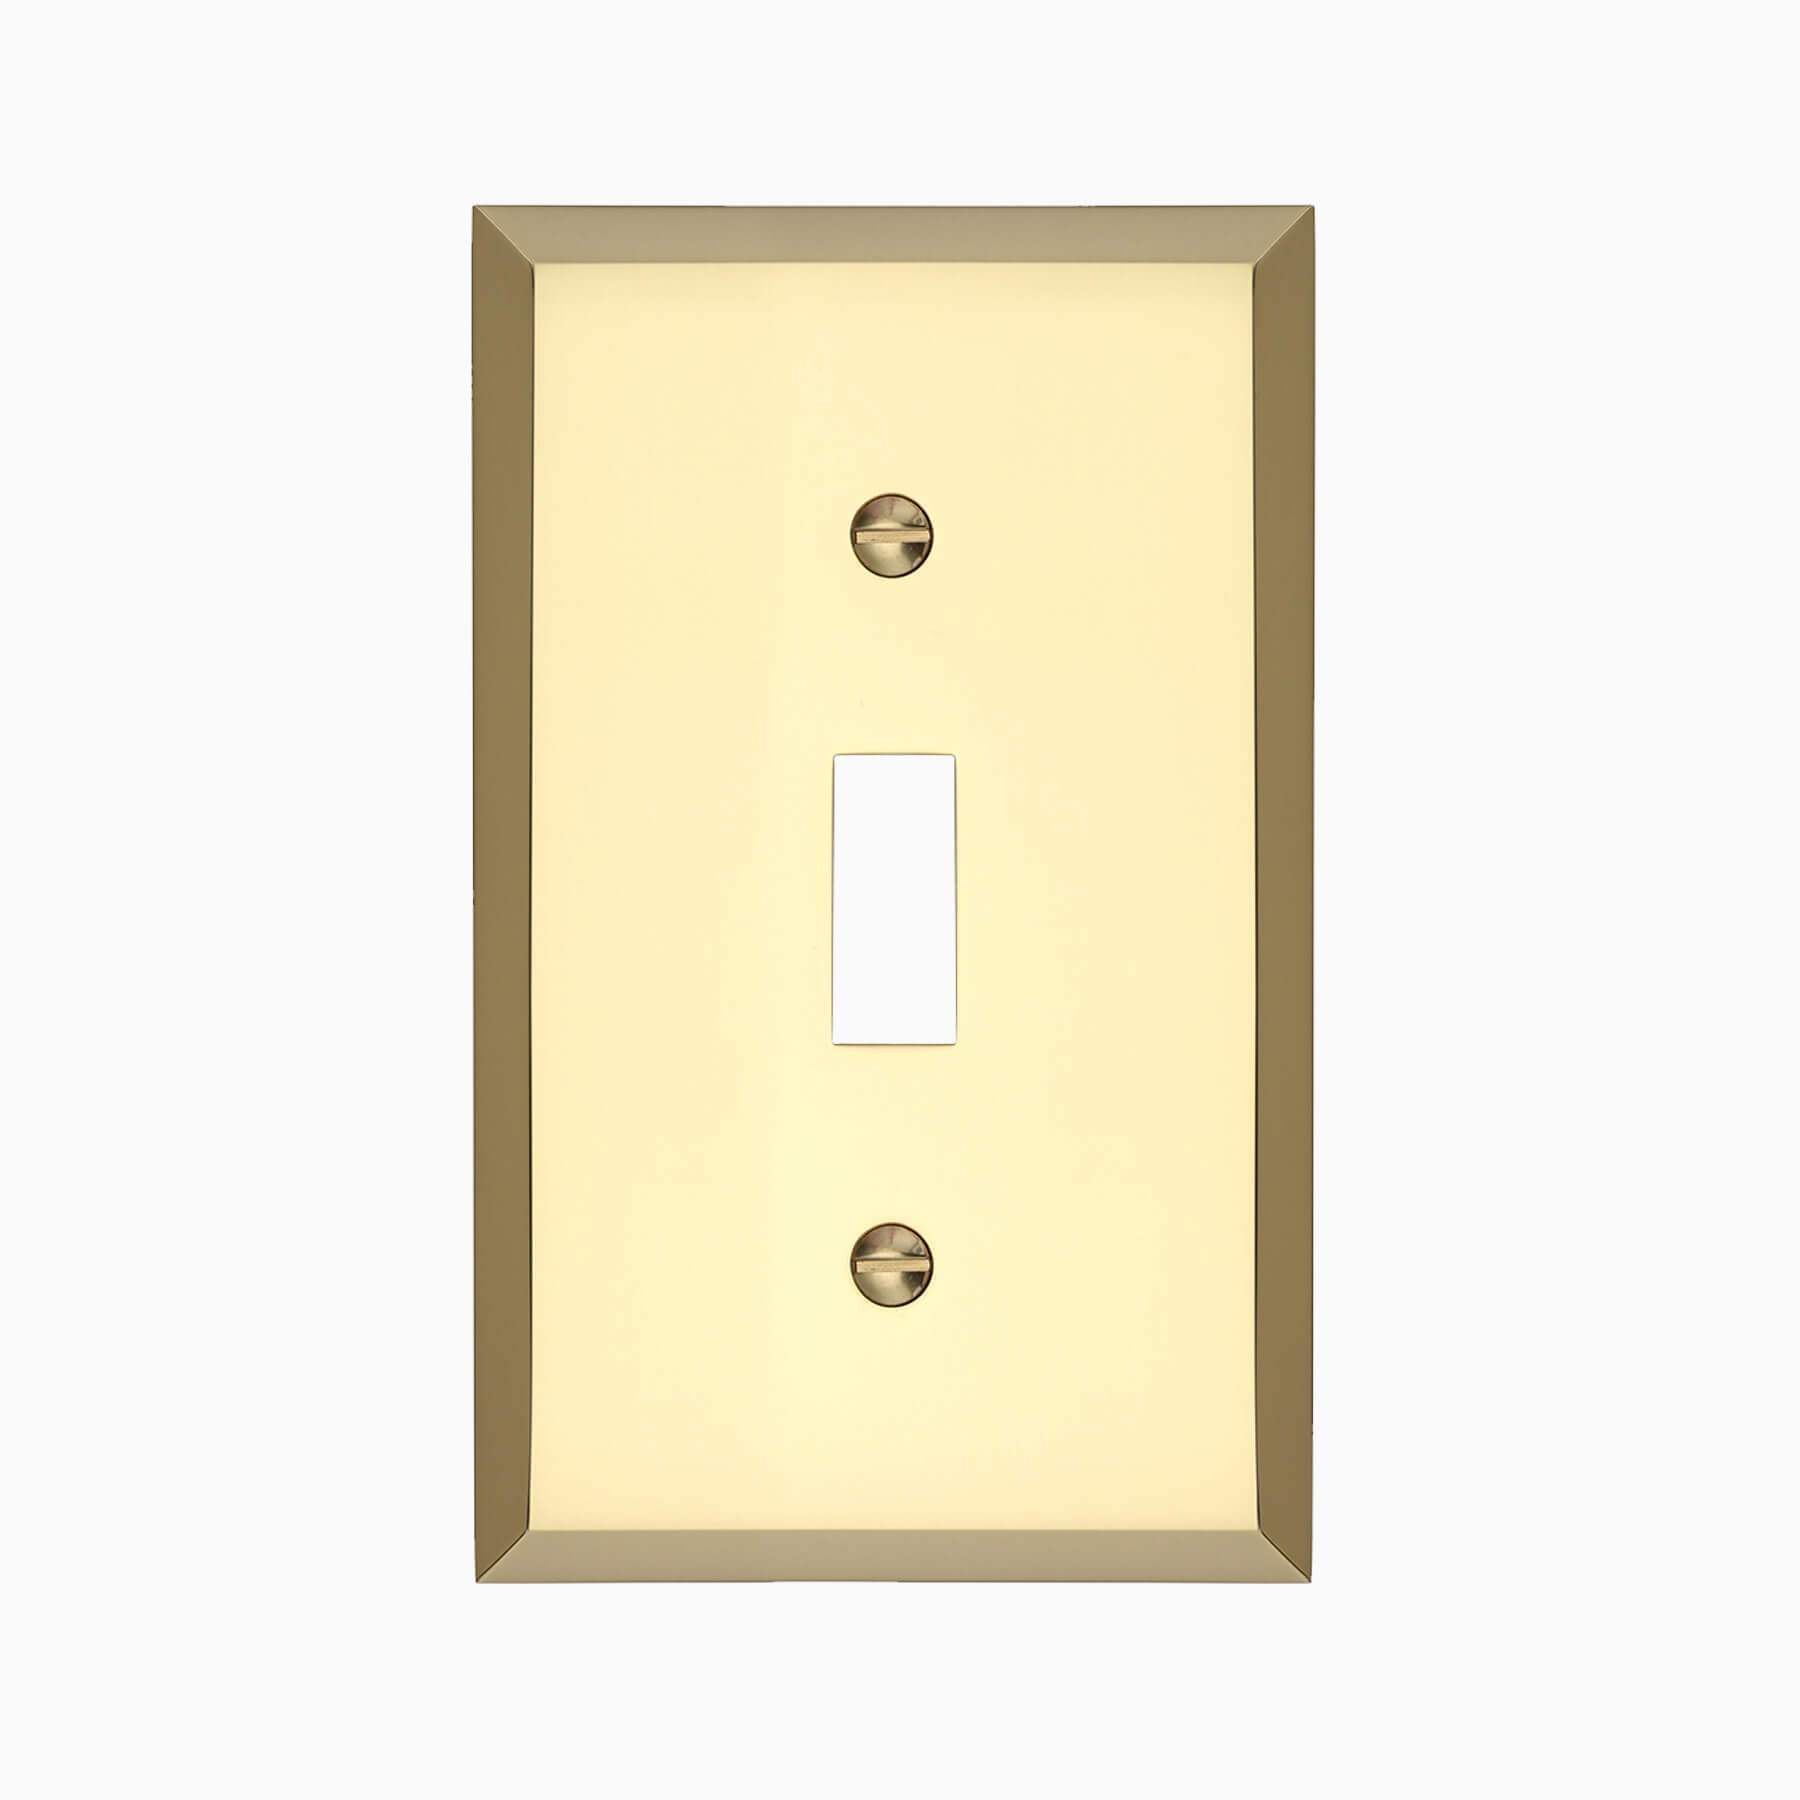 Brass Light Switch Covers Magnificent Graham Single Light Switch Cover  Wall Mounted Electrical Switch Inspiration Design